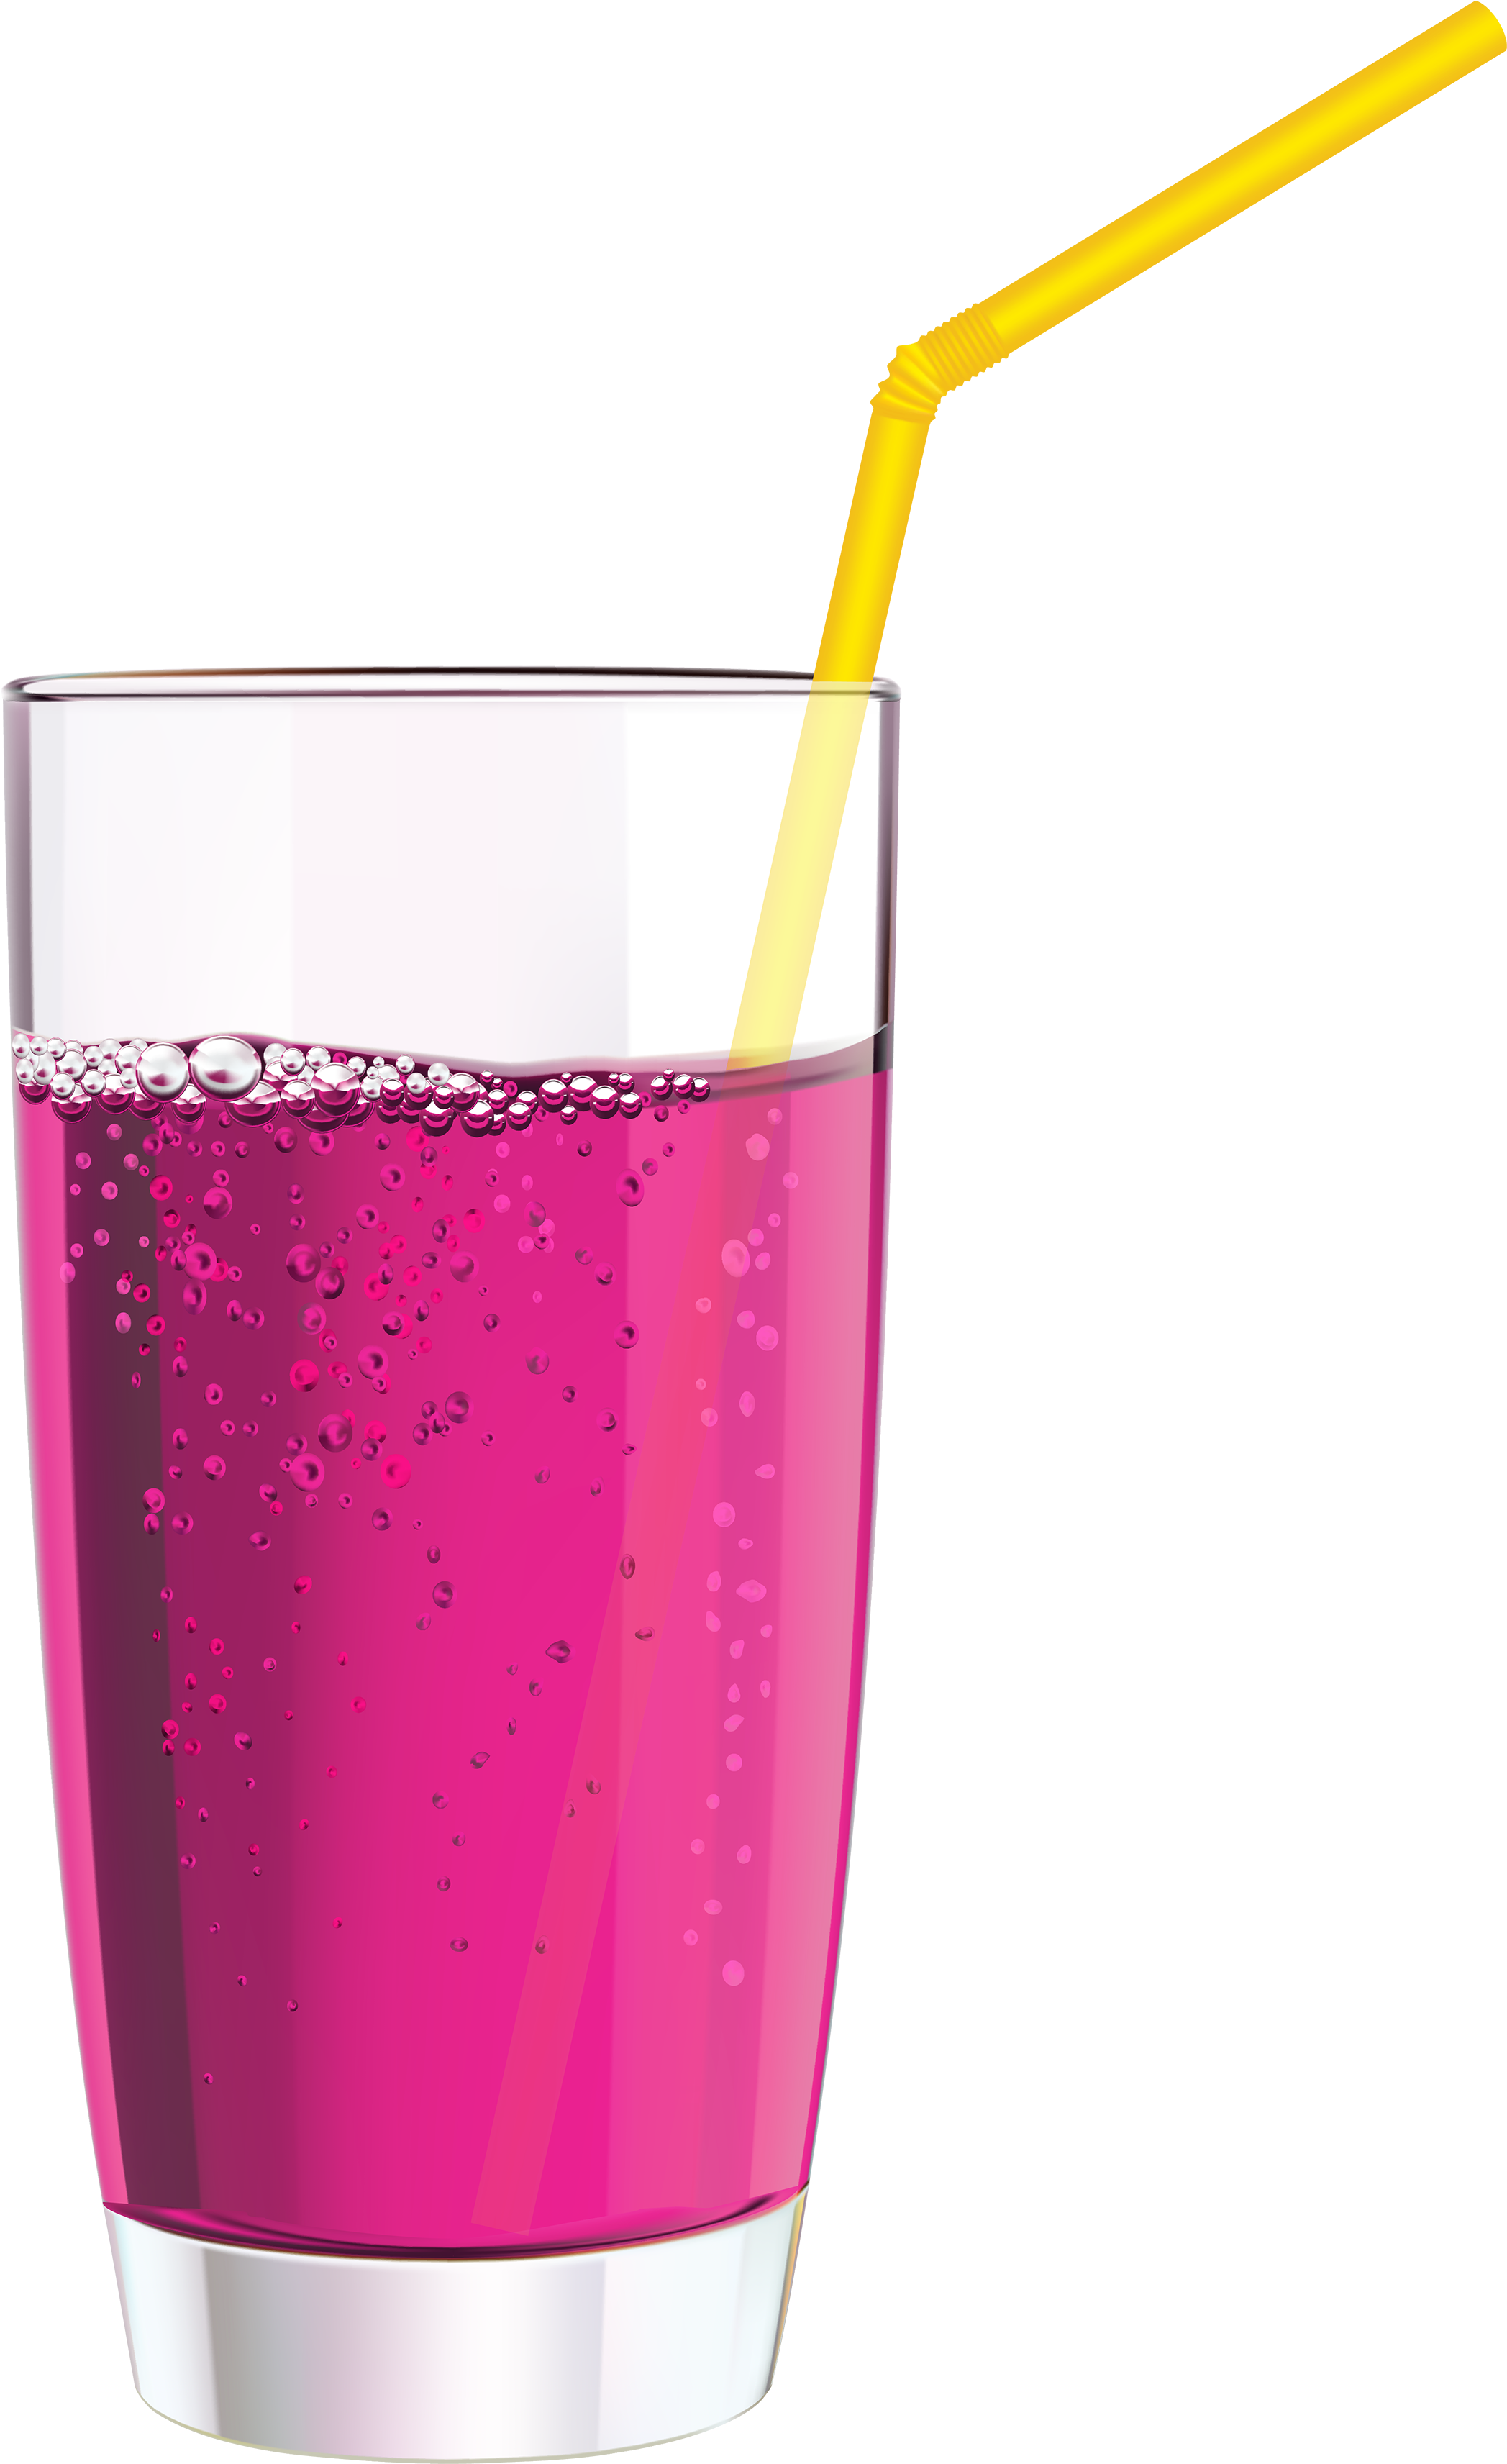 Straw clipart. Download pink drink png